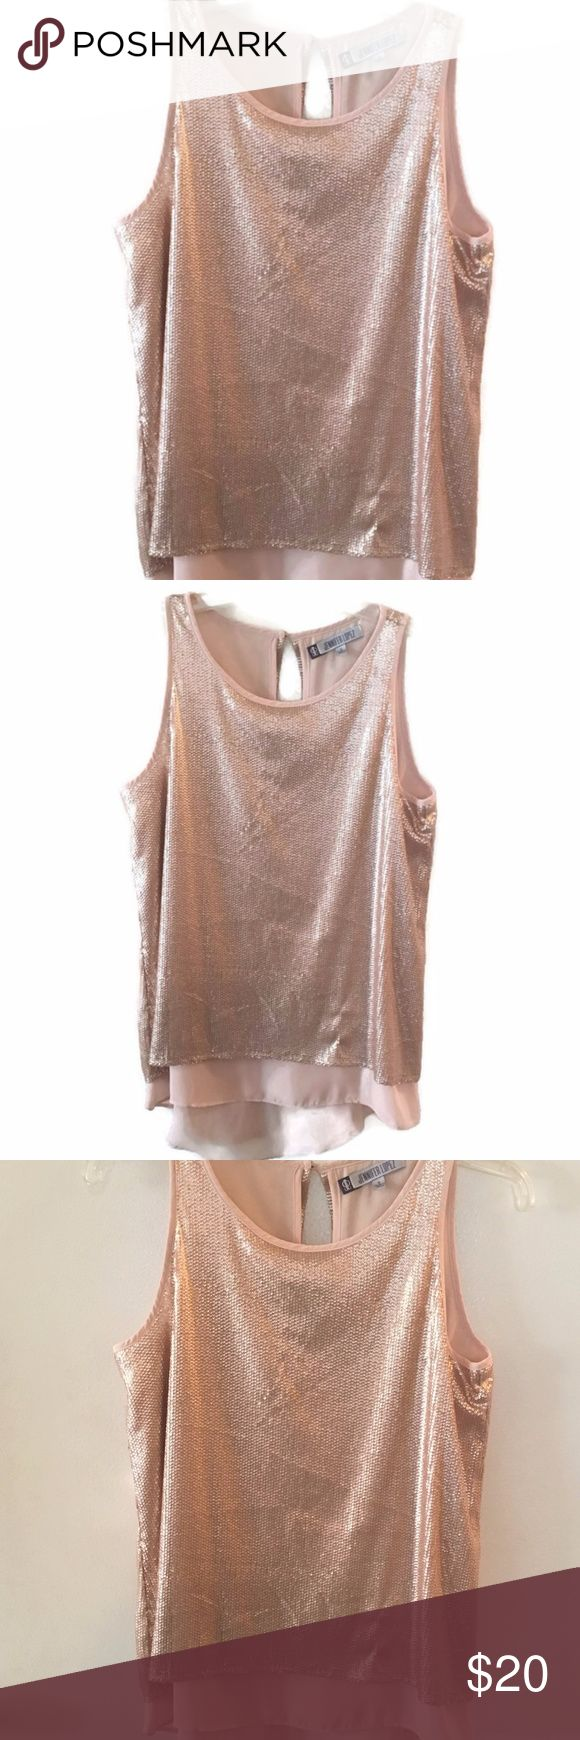 """Jennifer Lopez Rose Gold Sequin Sleeveless Top Sparkly Rosegold Sequin Top  Beautiful Festive Sleeveless Hi Lo Top Rose Gold Sequins Over top of Polyester Shell 100% Polyester Size Small Button Closure in Back Split Back Design Length: 25"""" in front 28"""" in back Armpit to Armpit: 19""""  EXCELLENT Used Condition Comes from Non-Smoking Home Jennifer Lopez Tops"""